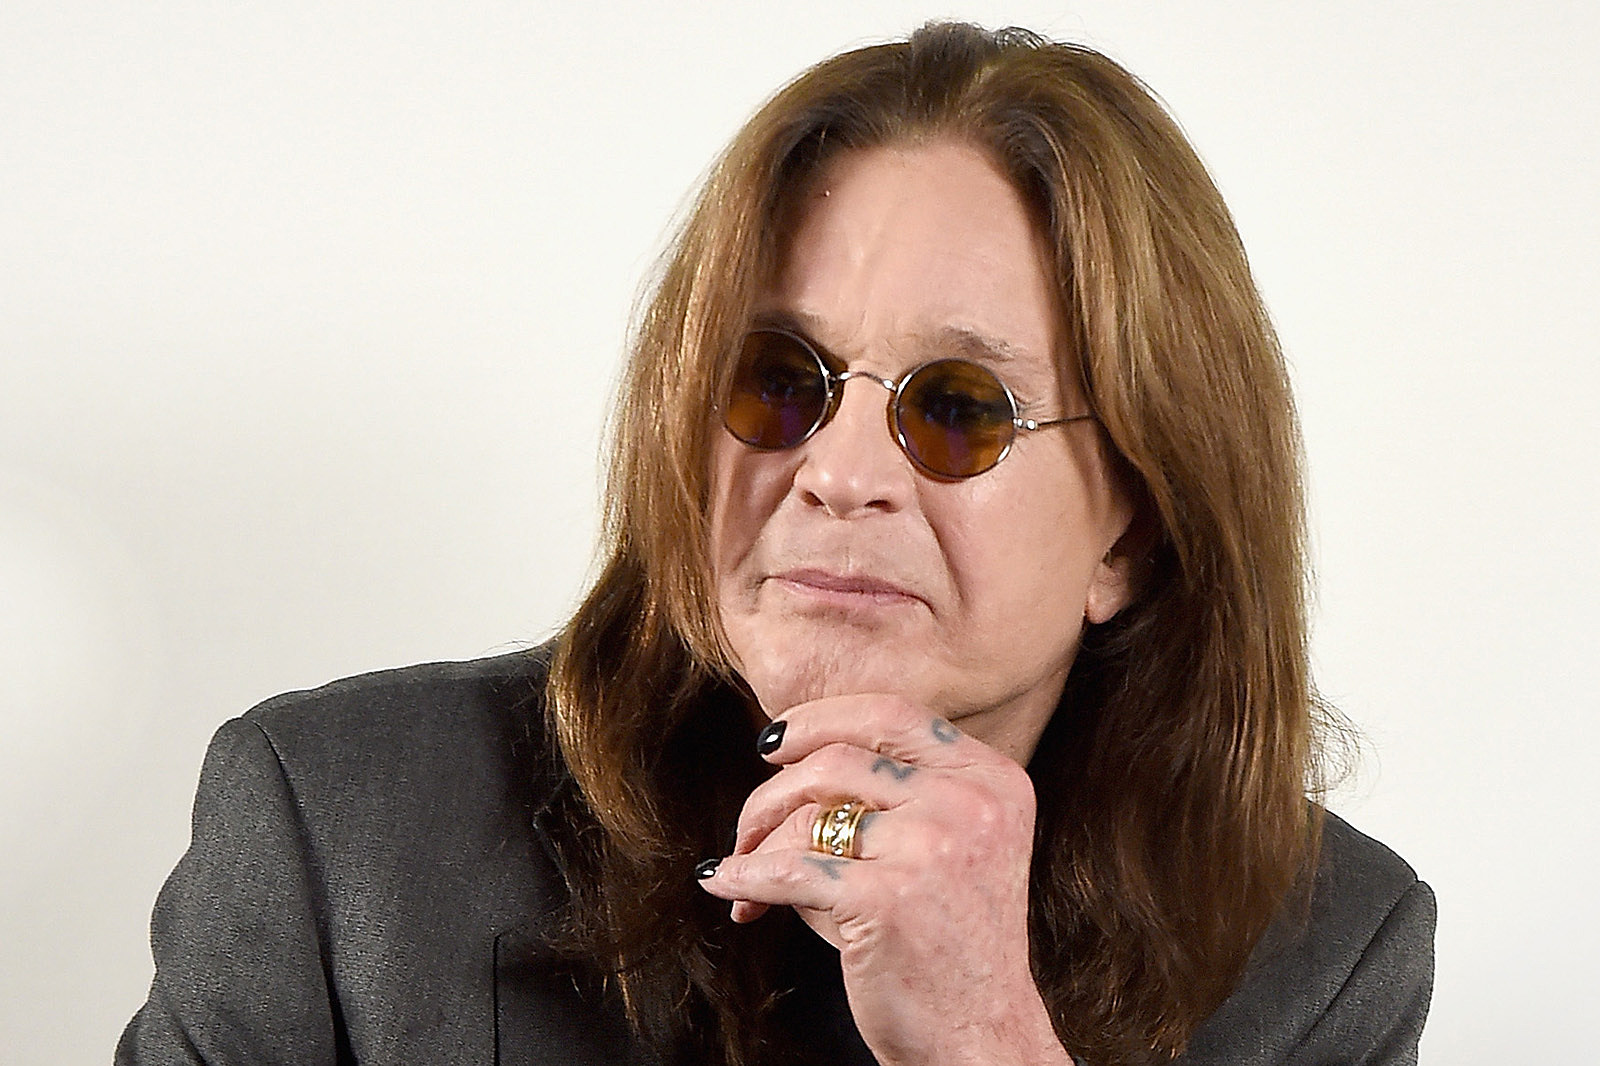 Ozzy Osbourne May Not Have Needed Serious Surgery